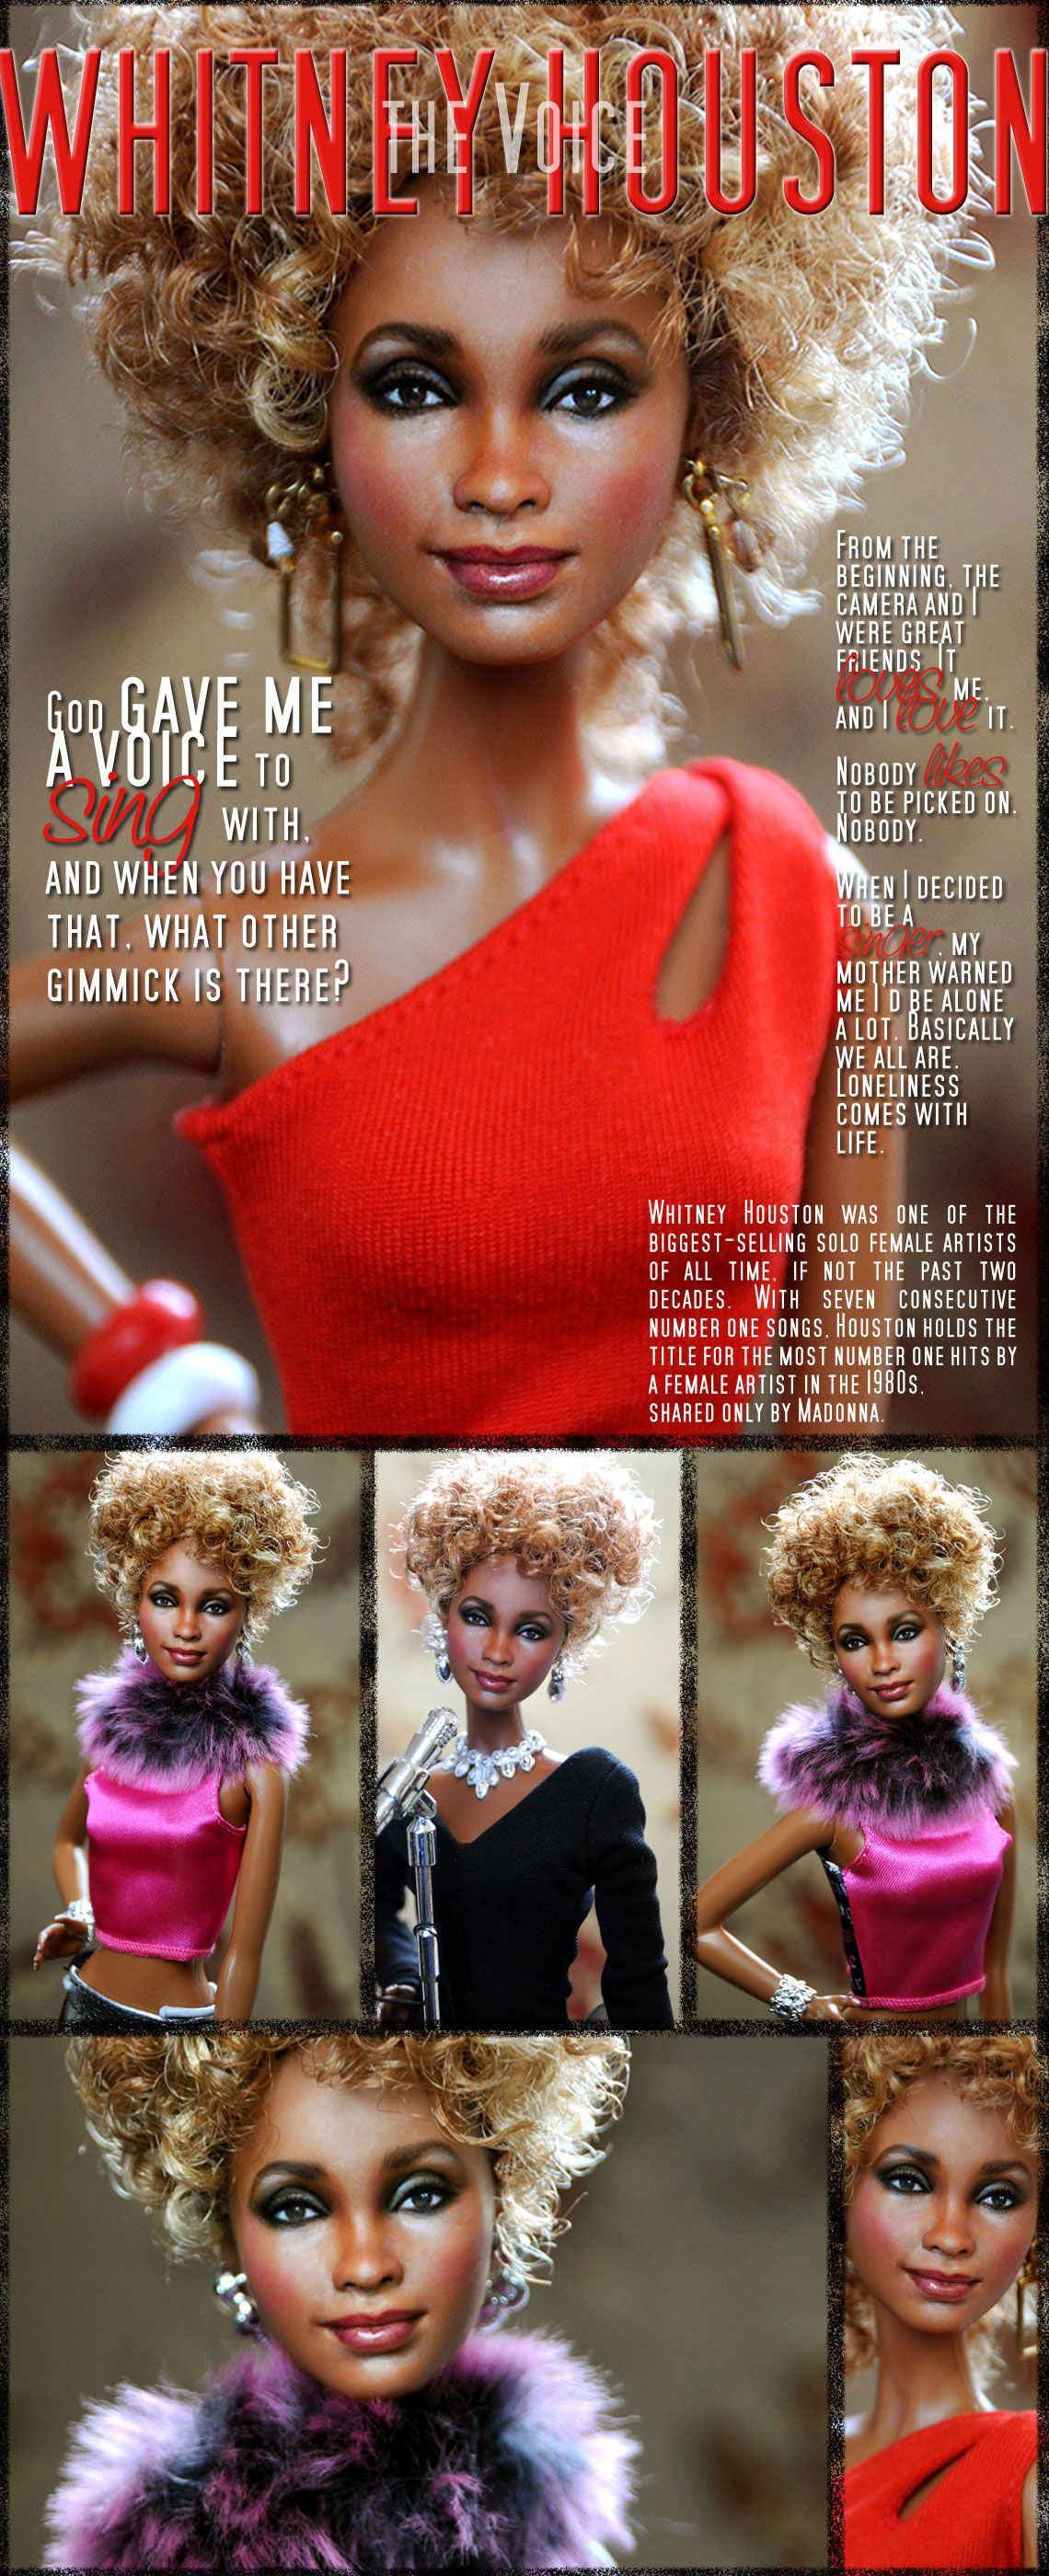 A Mattel Barbie becomes Whitney Houston (repainted and restyled Doll) by Noel Cruz of ncruz.com. Web Site and Graphics by stevemckinnis.com.